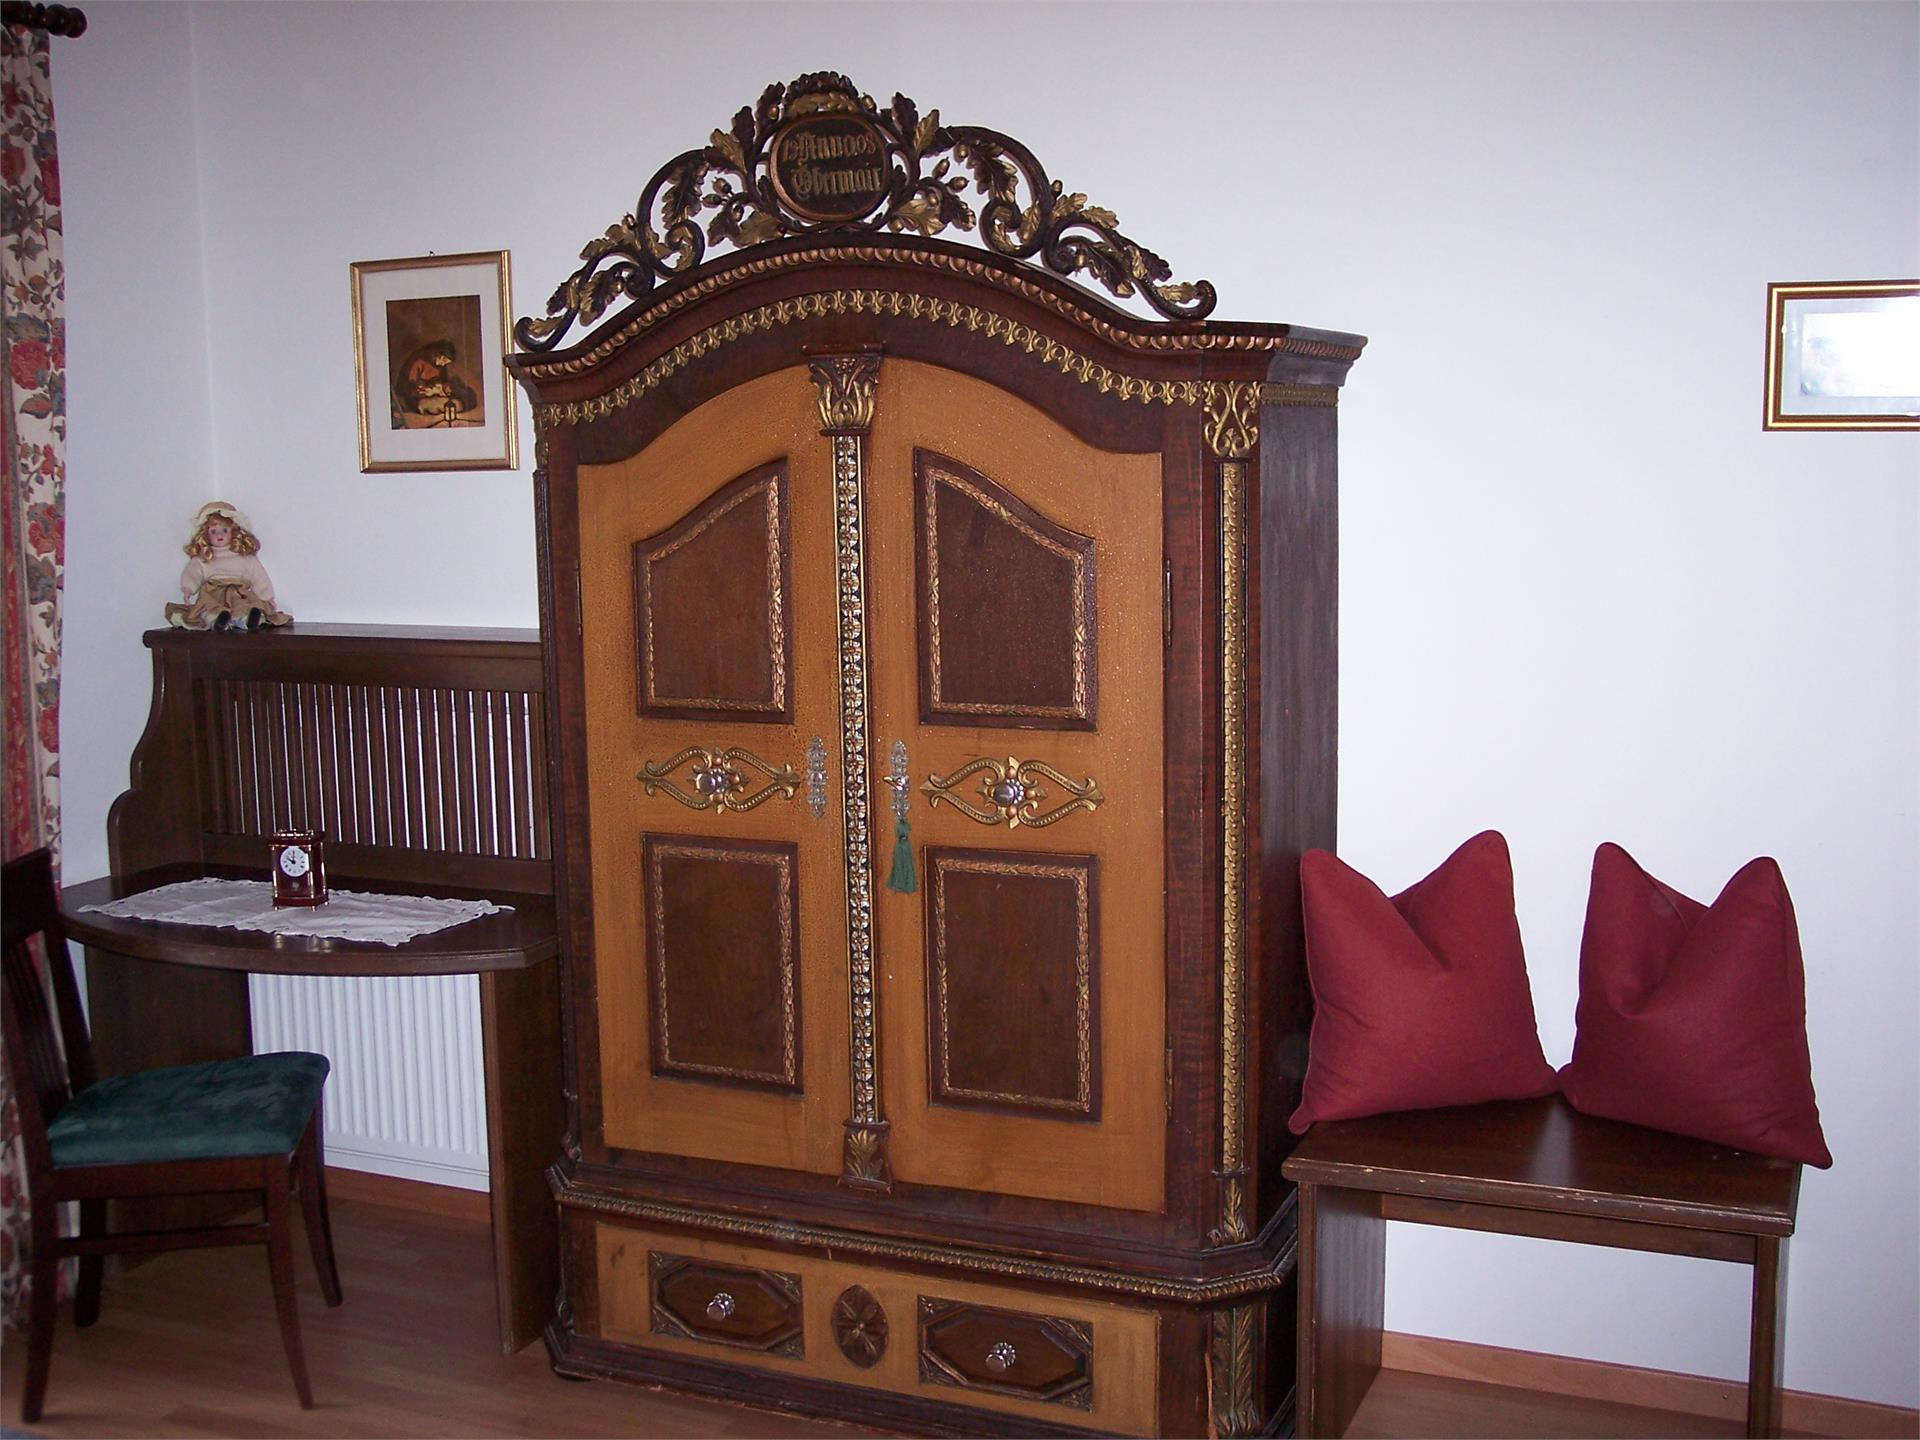 Room with antique forniture